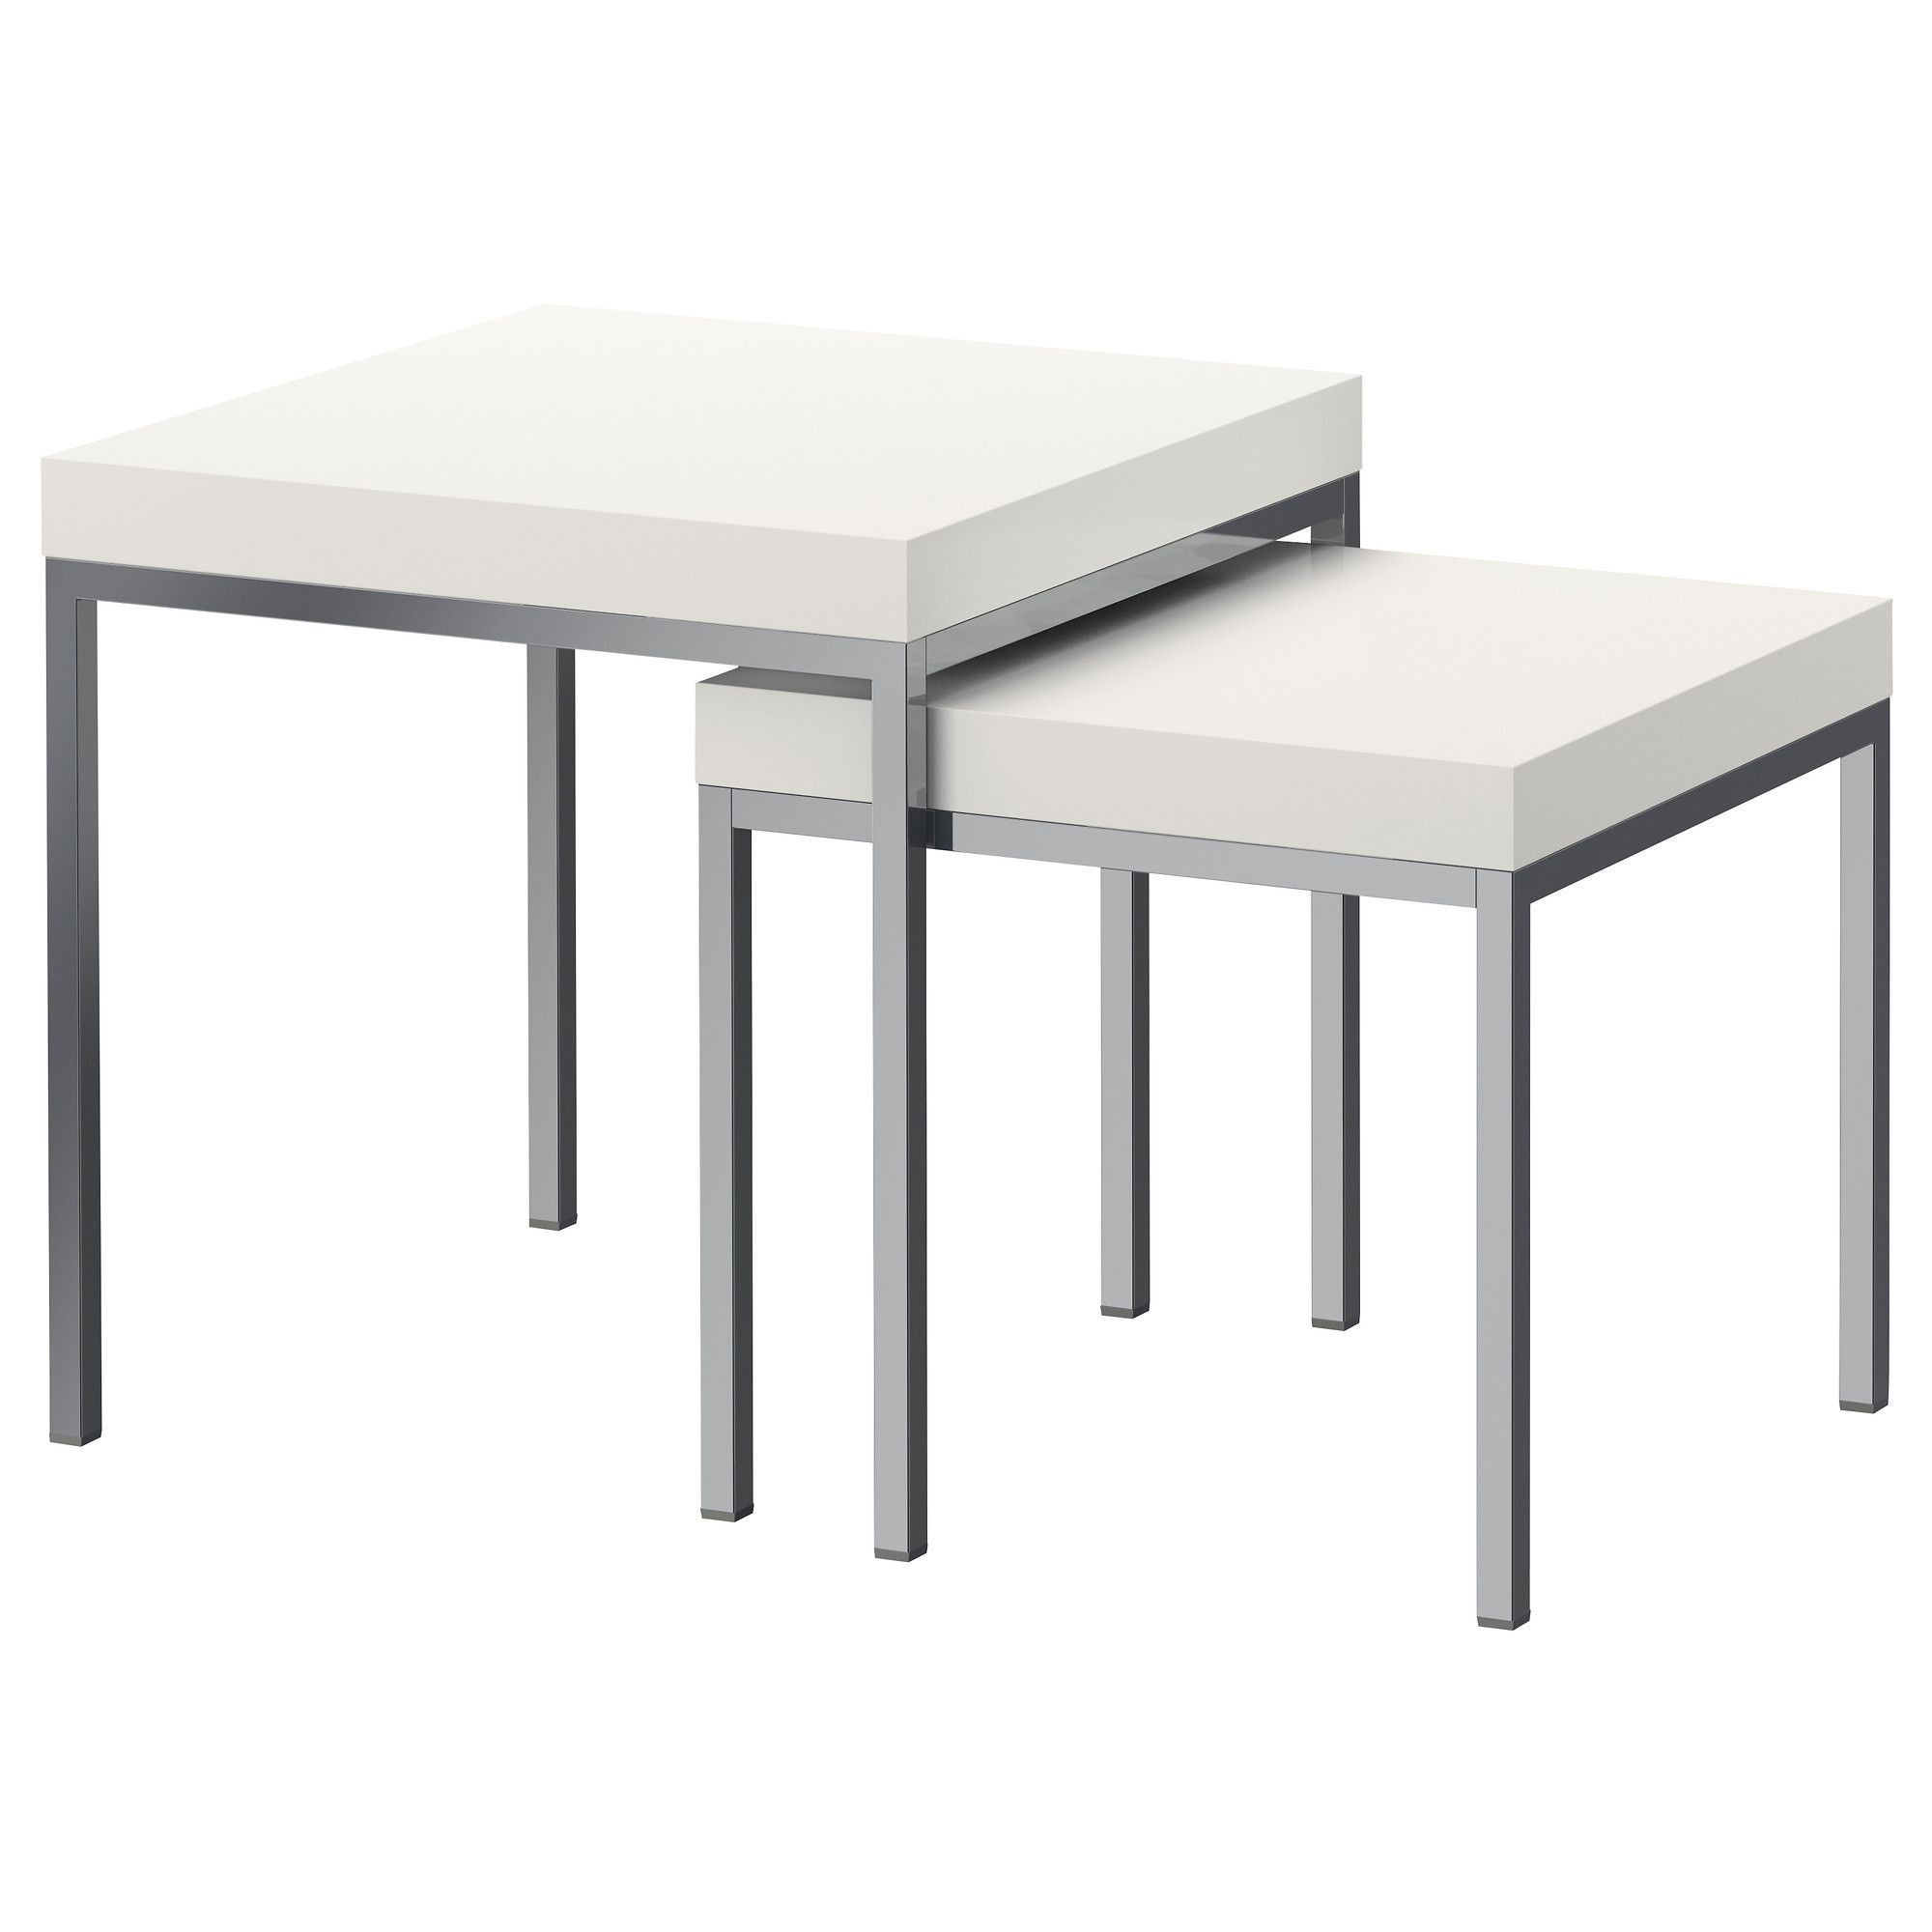 Klubbo Ikea Klubbo Nesting Tables Set Of 2 White Ikea Would This Work